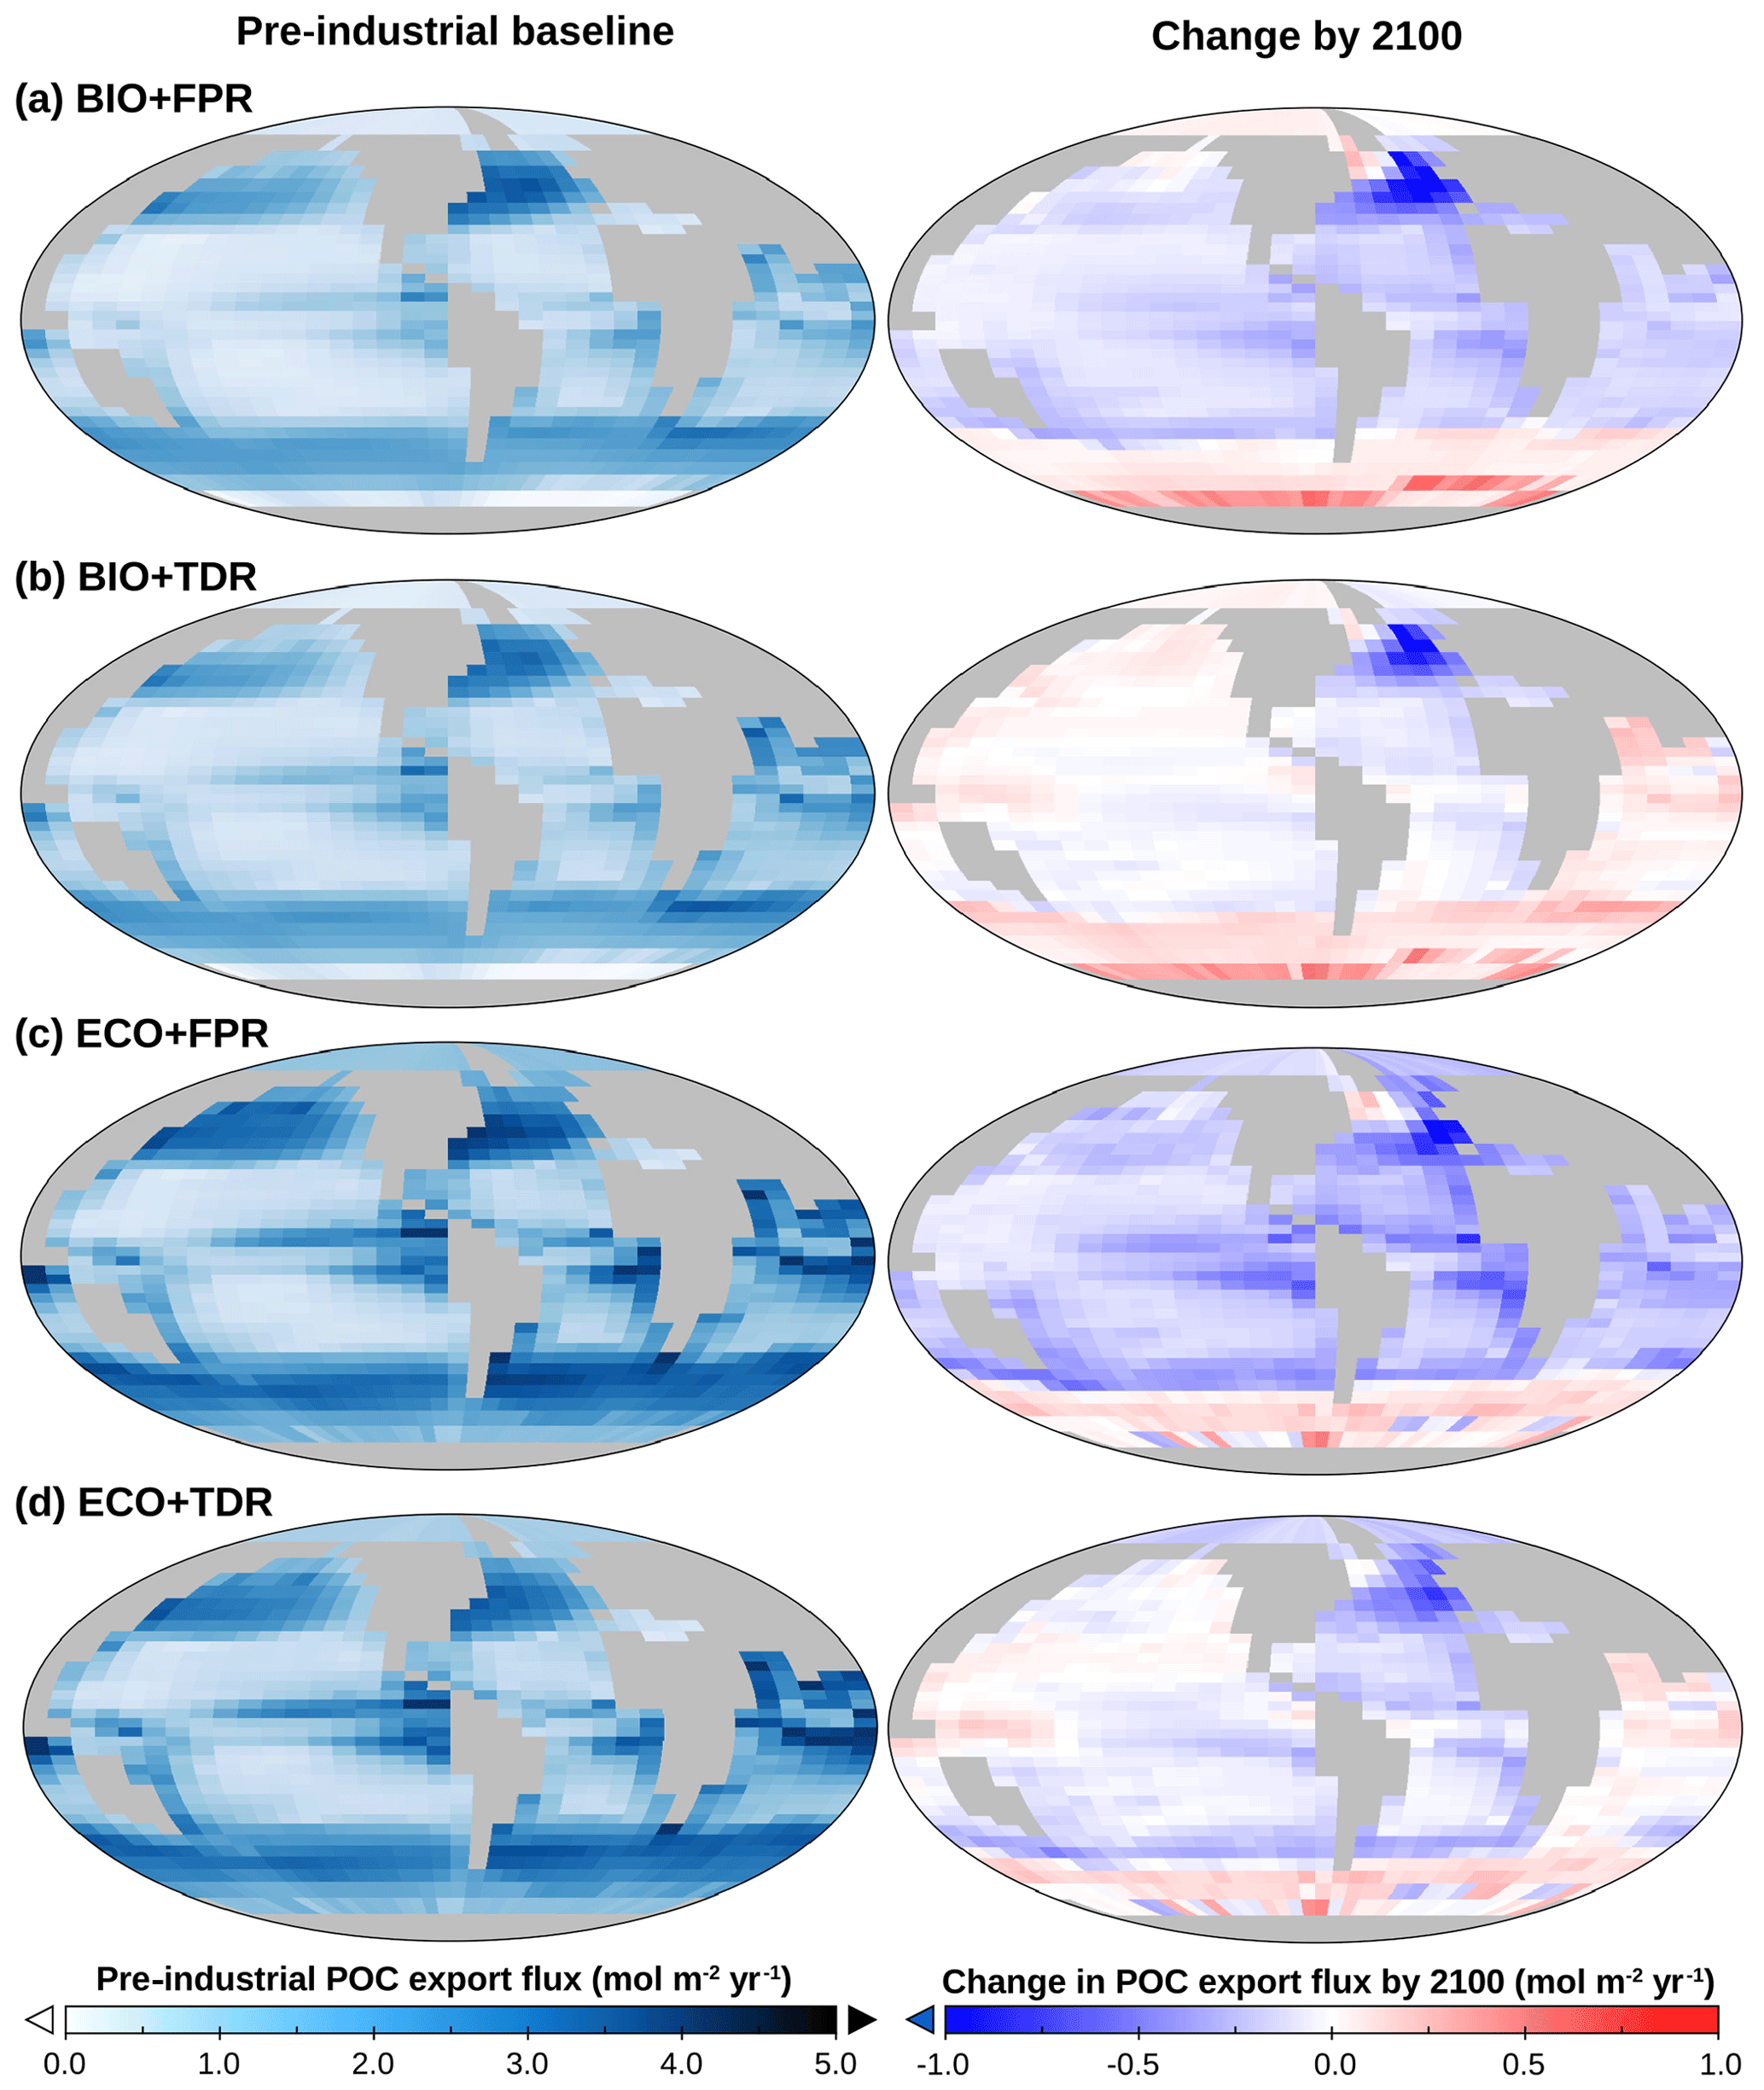 EcoGEnIE POC export maps for default calibrations of BIO+FPR, BIO+TDR, ECO+FPR, and ECO+TDR, showing baseline export patterns (left) and the change in POC export by 2100 relative to the 1765 preindustrial baseline as a result of RCP4.5 (right). Baseline export is highest in high-latitude waters and along the equator in all configurations, but is higher in the ECO configurations and slightly lower in the TDR configurations. In BIO+FPR export declines in low and mid-latitude waters and increases in high-latitude waters by 2100; adding TDR reduces the low and mid-latitude decline, while adding ECO increases the decline in these areas. Plot created with Panoply, available from NASA Goddard Space Flight Center.